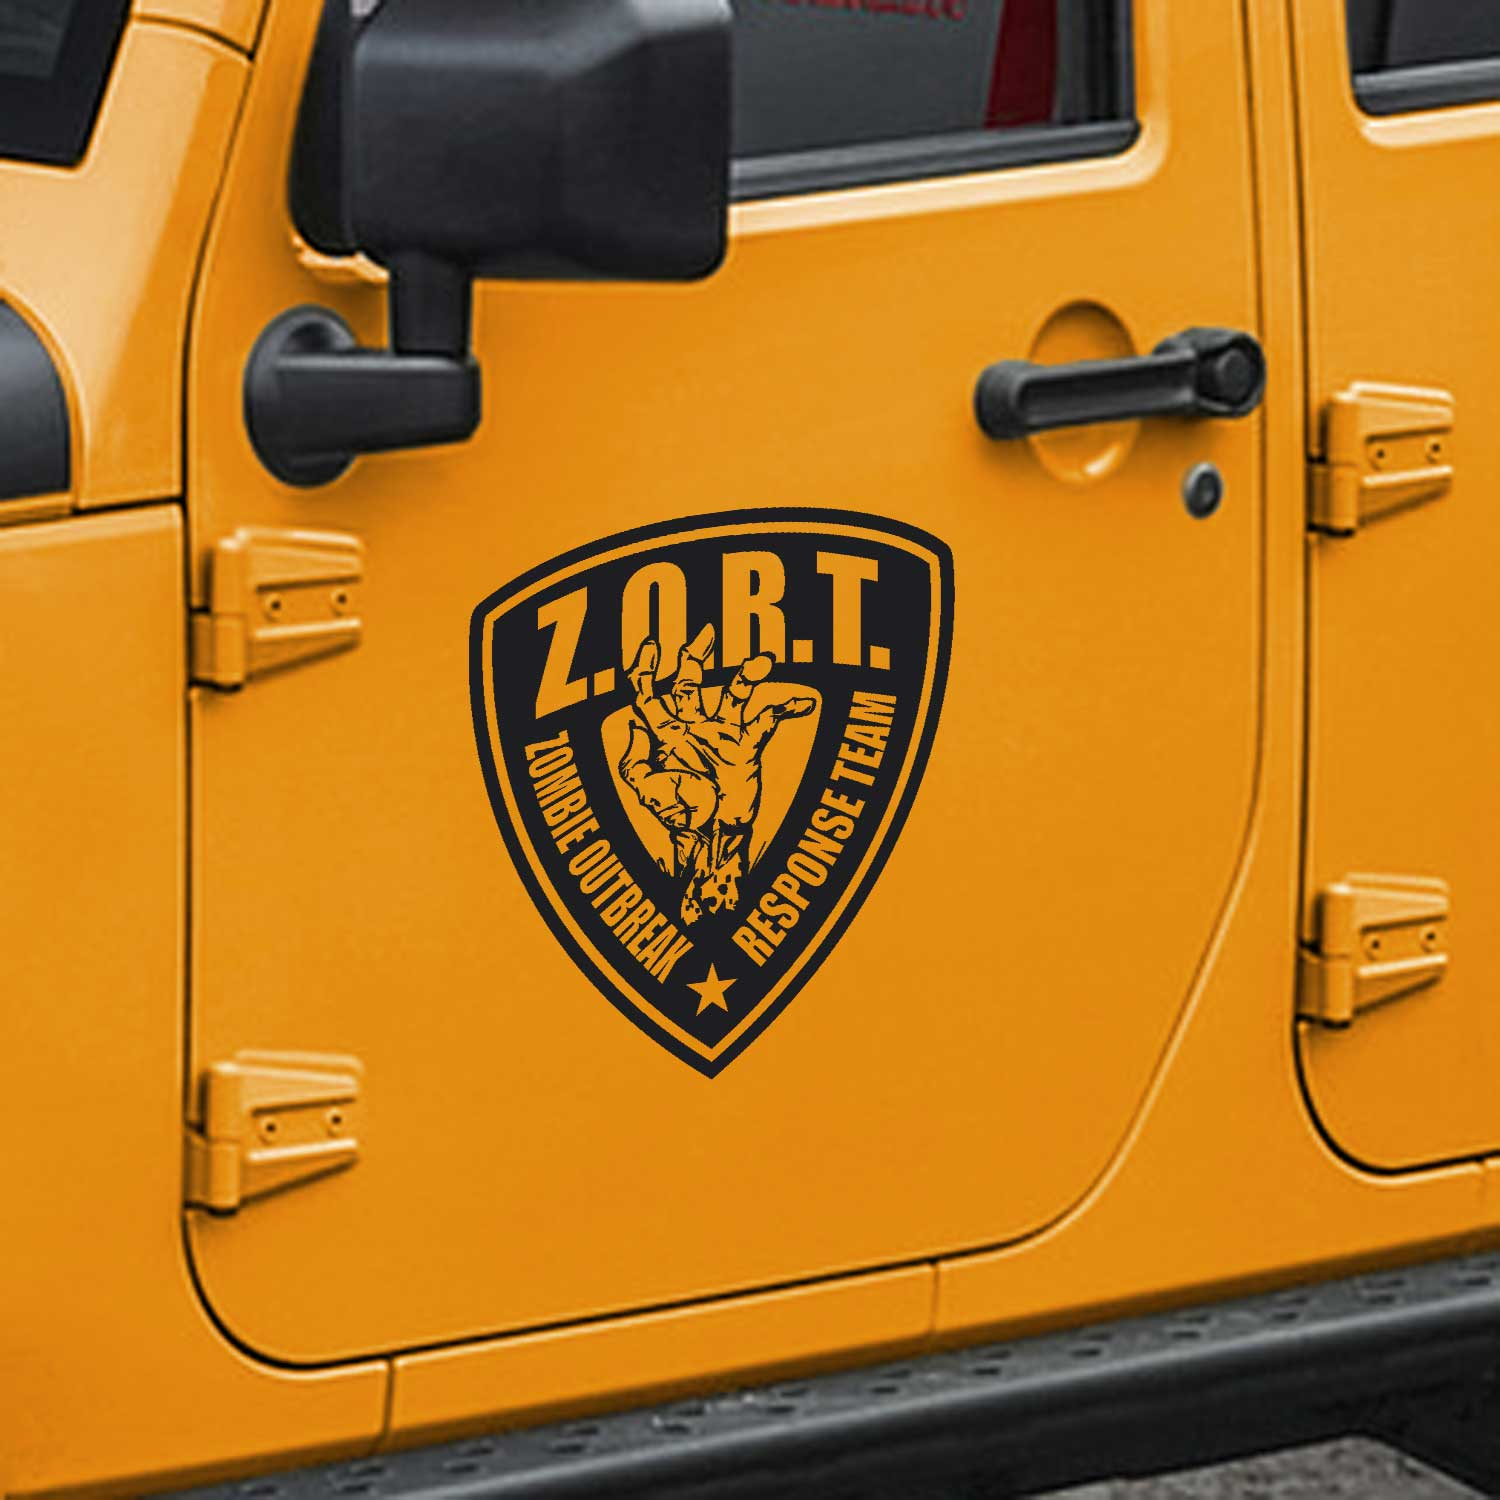 Zombie Outbreak Response Decals – Fits Jeep Wrangler